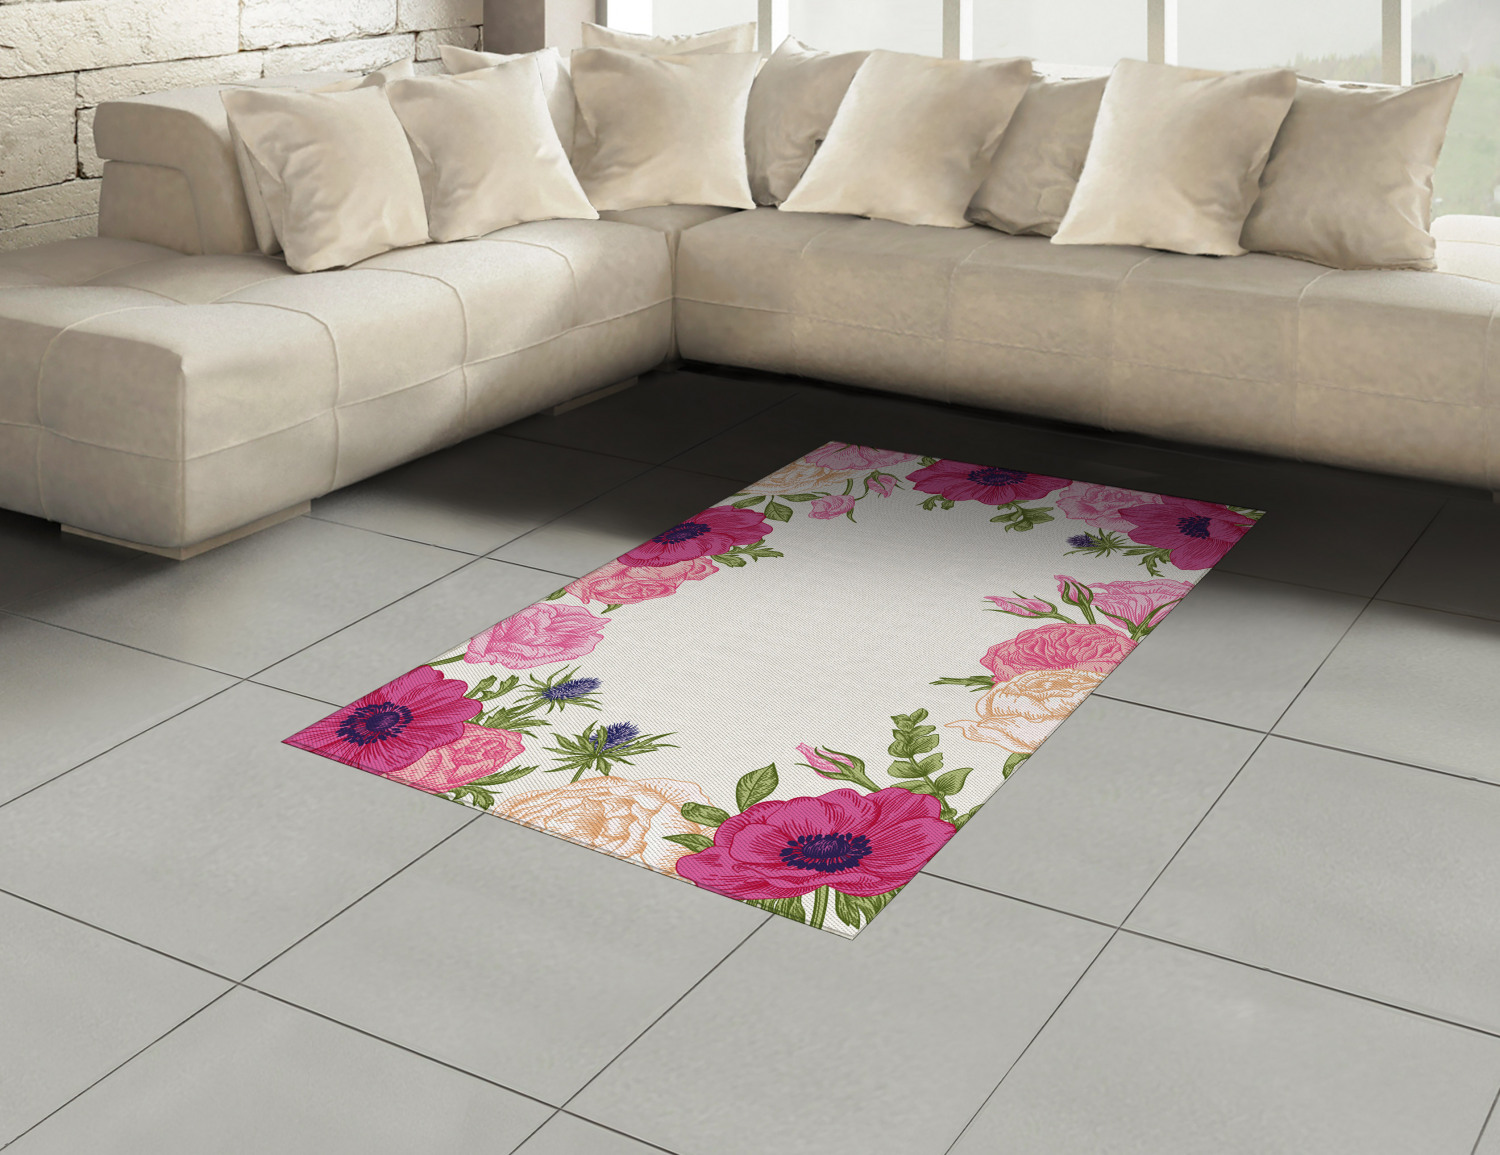 Anemone-Flower-Area-Rug-Decor-Flat-Woven-Accent-Rug-Home-Decor-2-Sizes-Ambesonne thumbnail 30